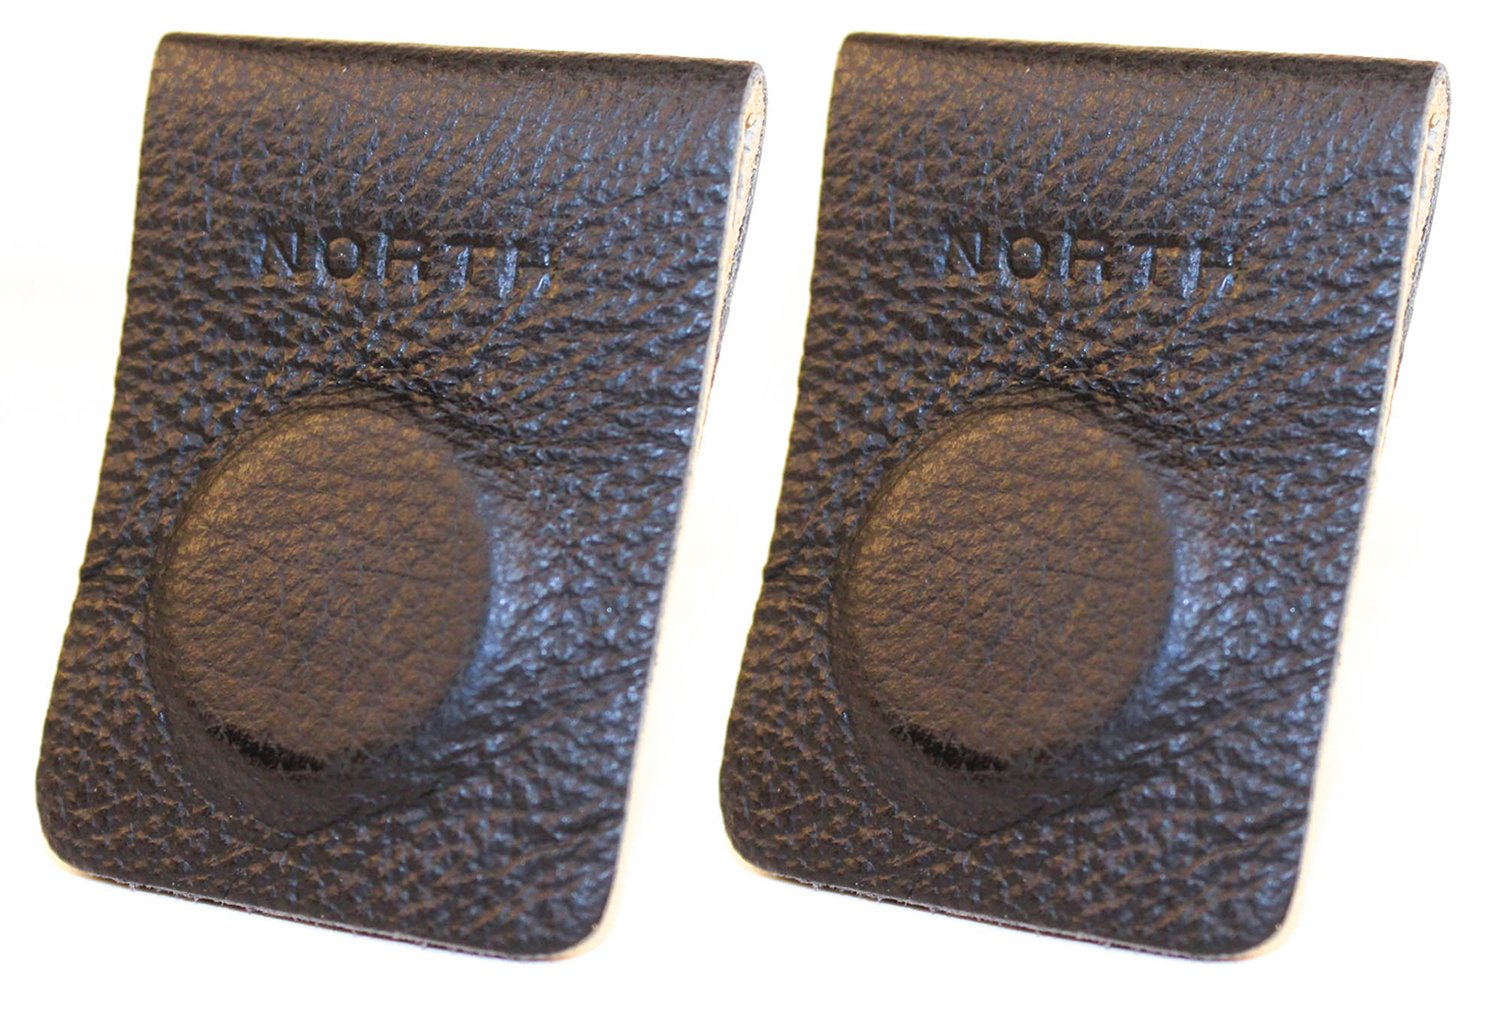 2 PACK Magnetic Therapy Clips for Natural Pain Relief for Sufferers of Arthritis Back Pain Neck Pain Headaches Shoulder Pain. Extremely Powerful 3000 surface/13,200 Core gauss Rare Earth Magnets.